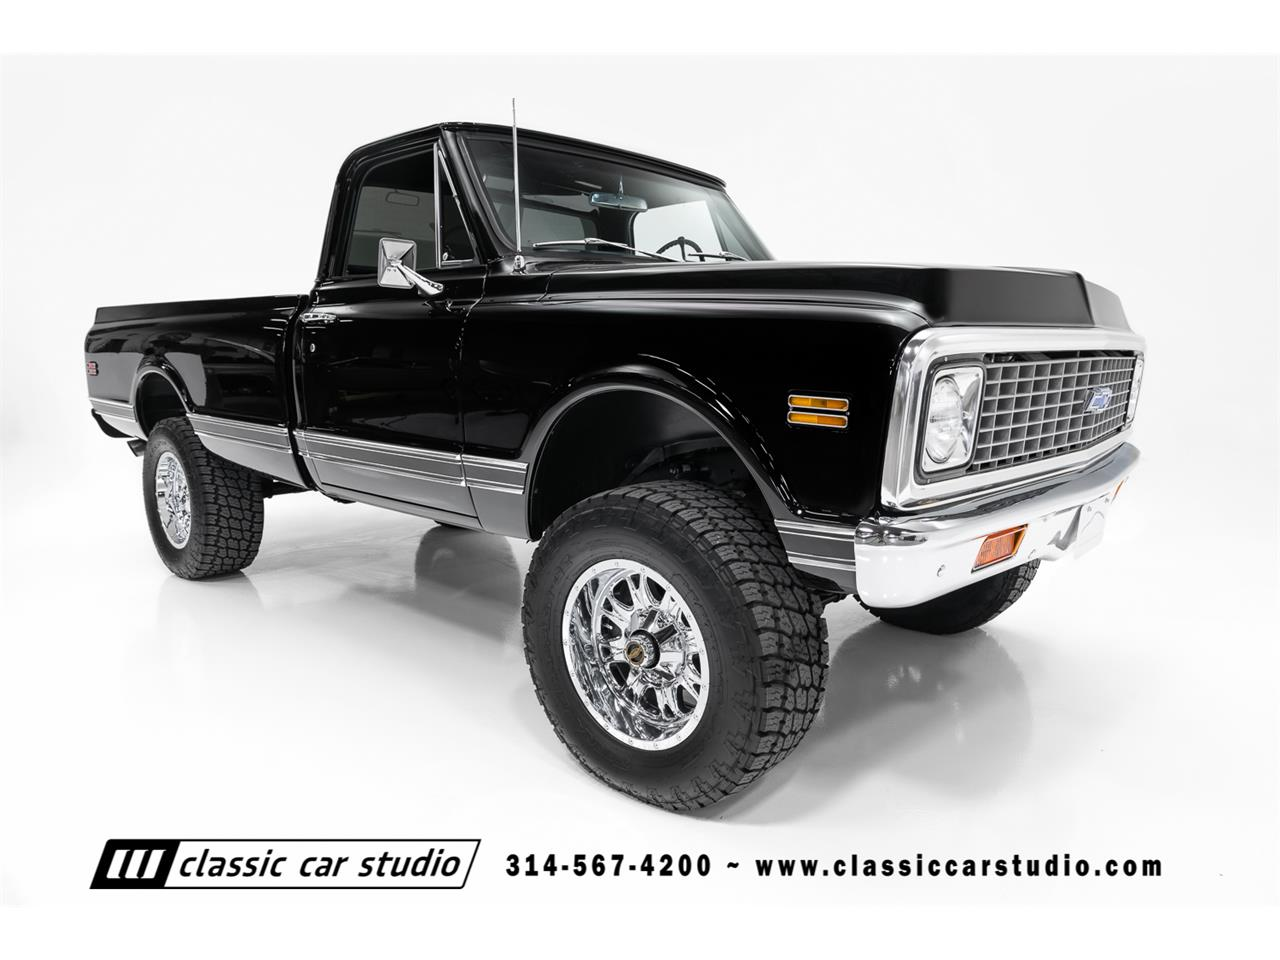 Large Picture of Classic '71 K-10 located in SAINT LOUIS Missouri - $59,900.00 - OLTK